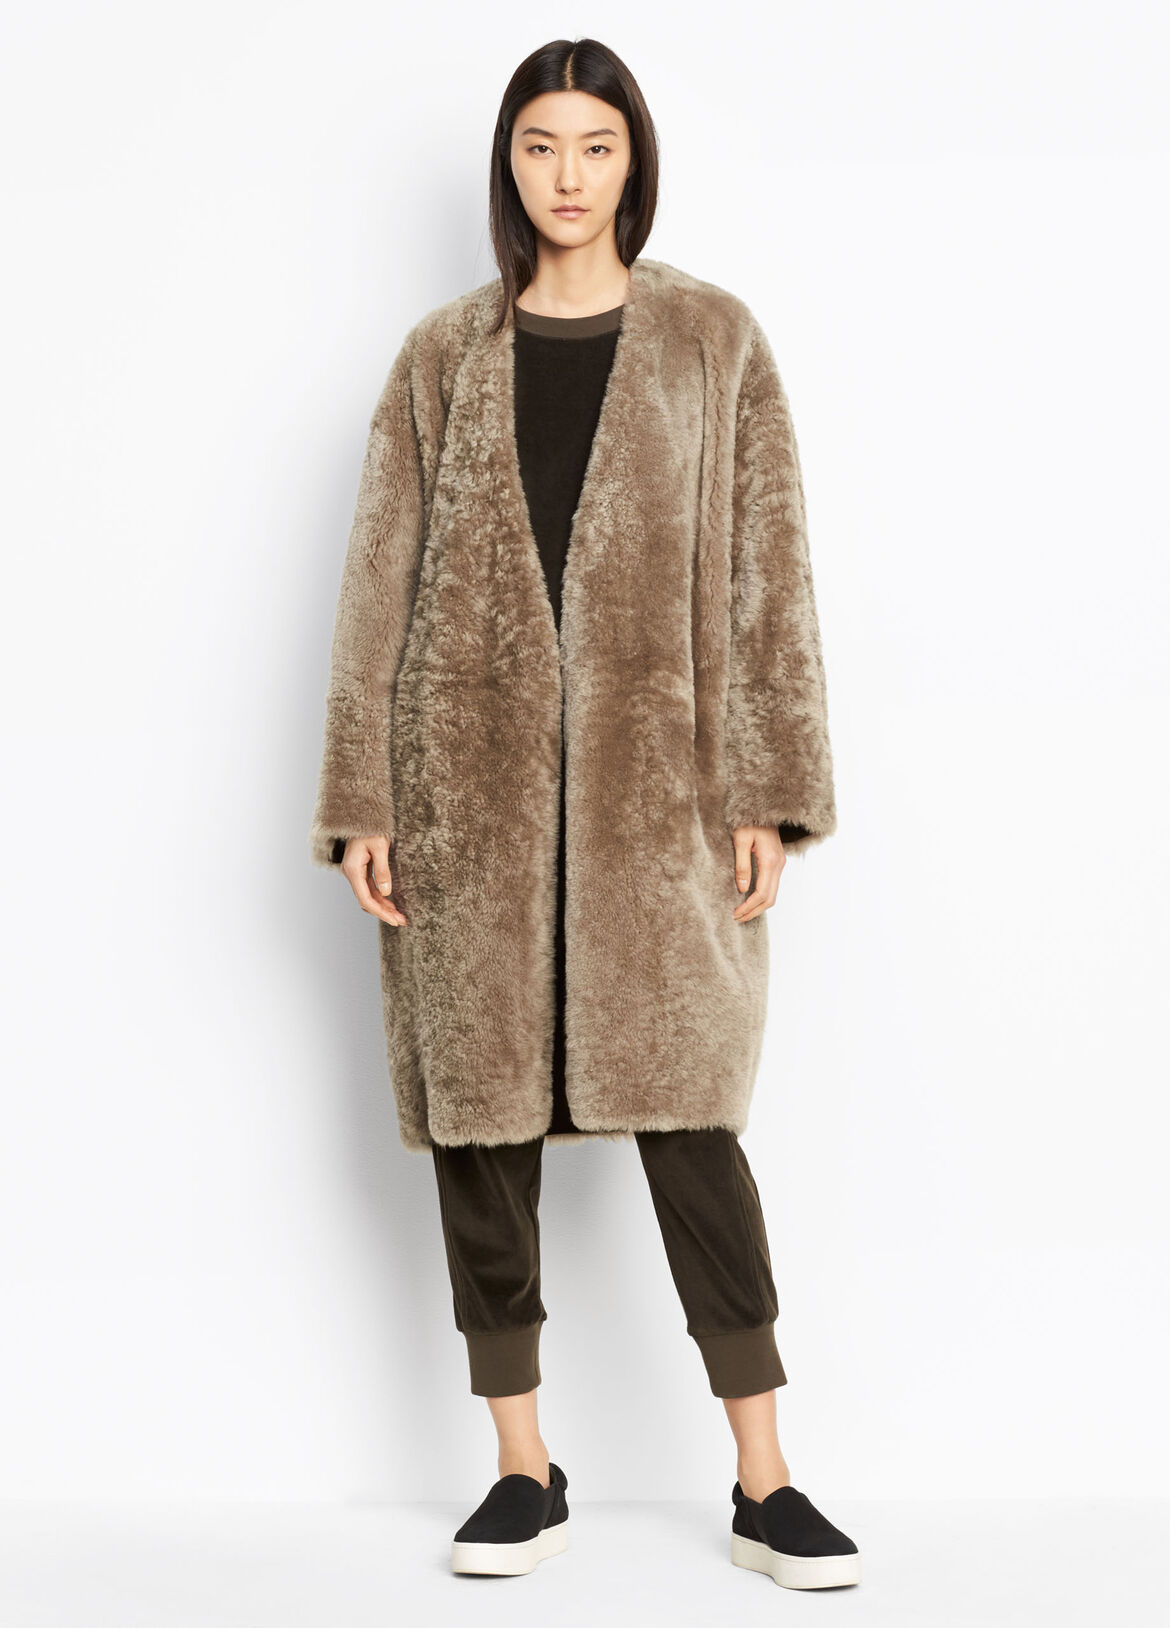 Women's Jackets And Outerwear   Vince